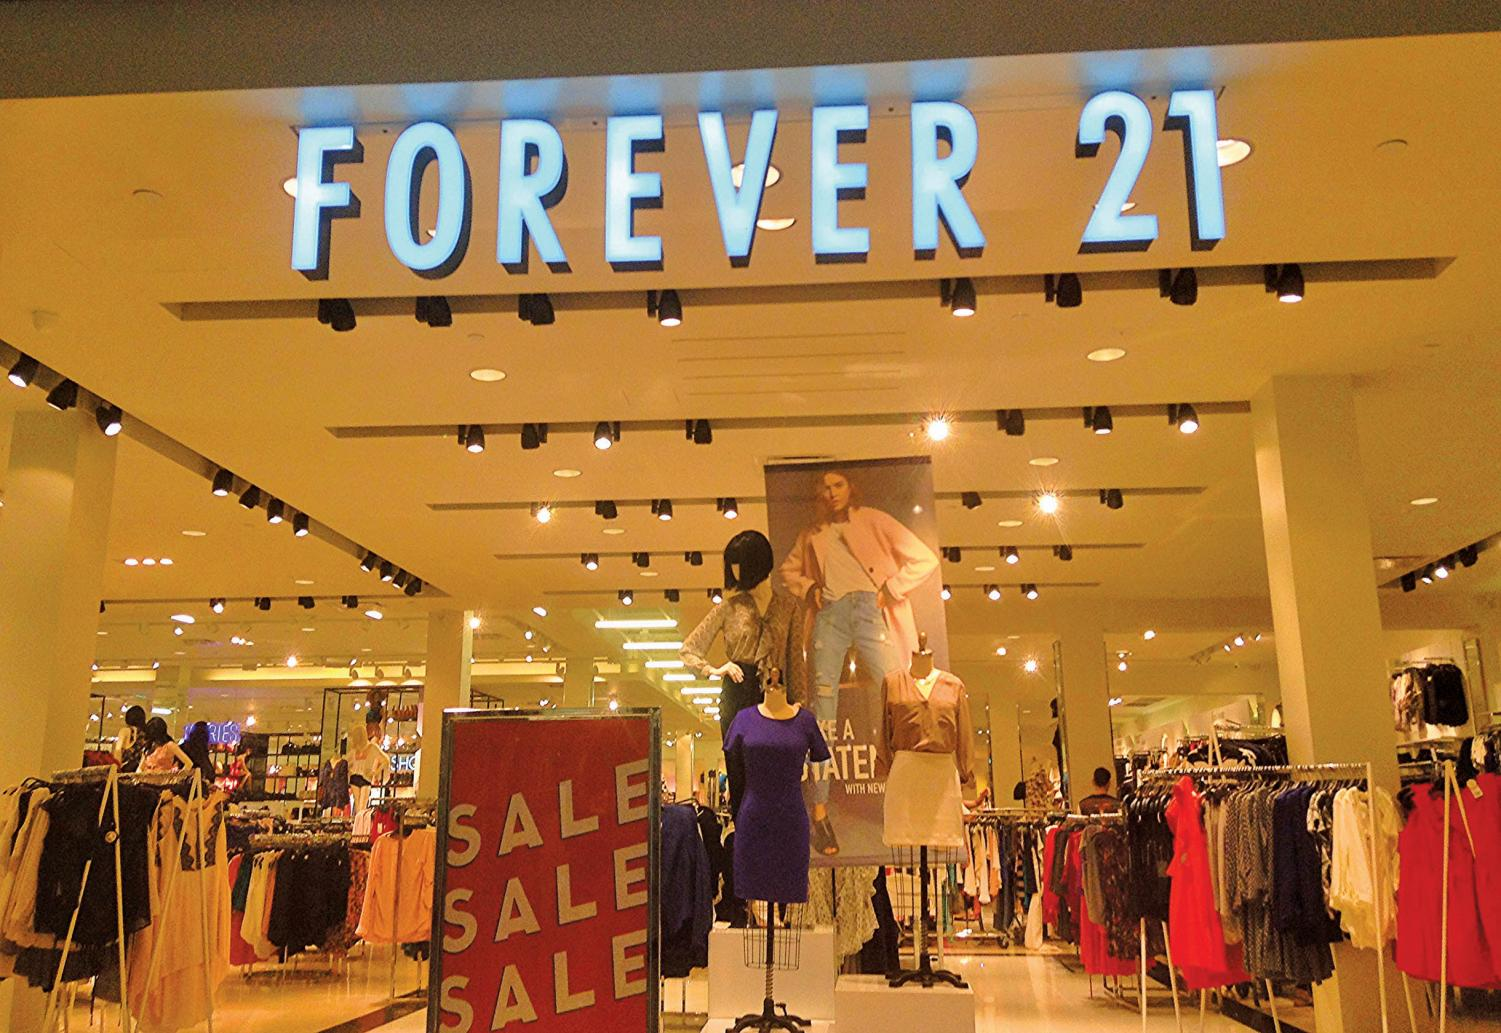 Forever 21 first opened on April 21, 1984, in Los Angeles, California. The store will have to close up to 178 locations in the U.S. according to the New York Times.